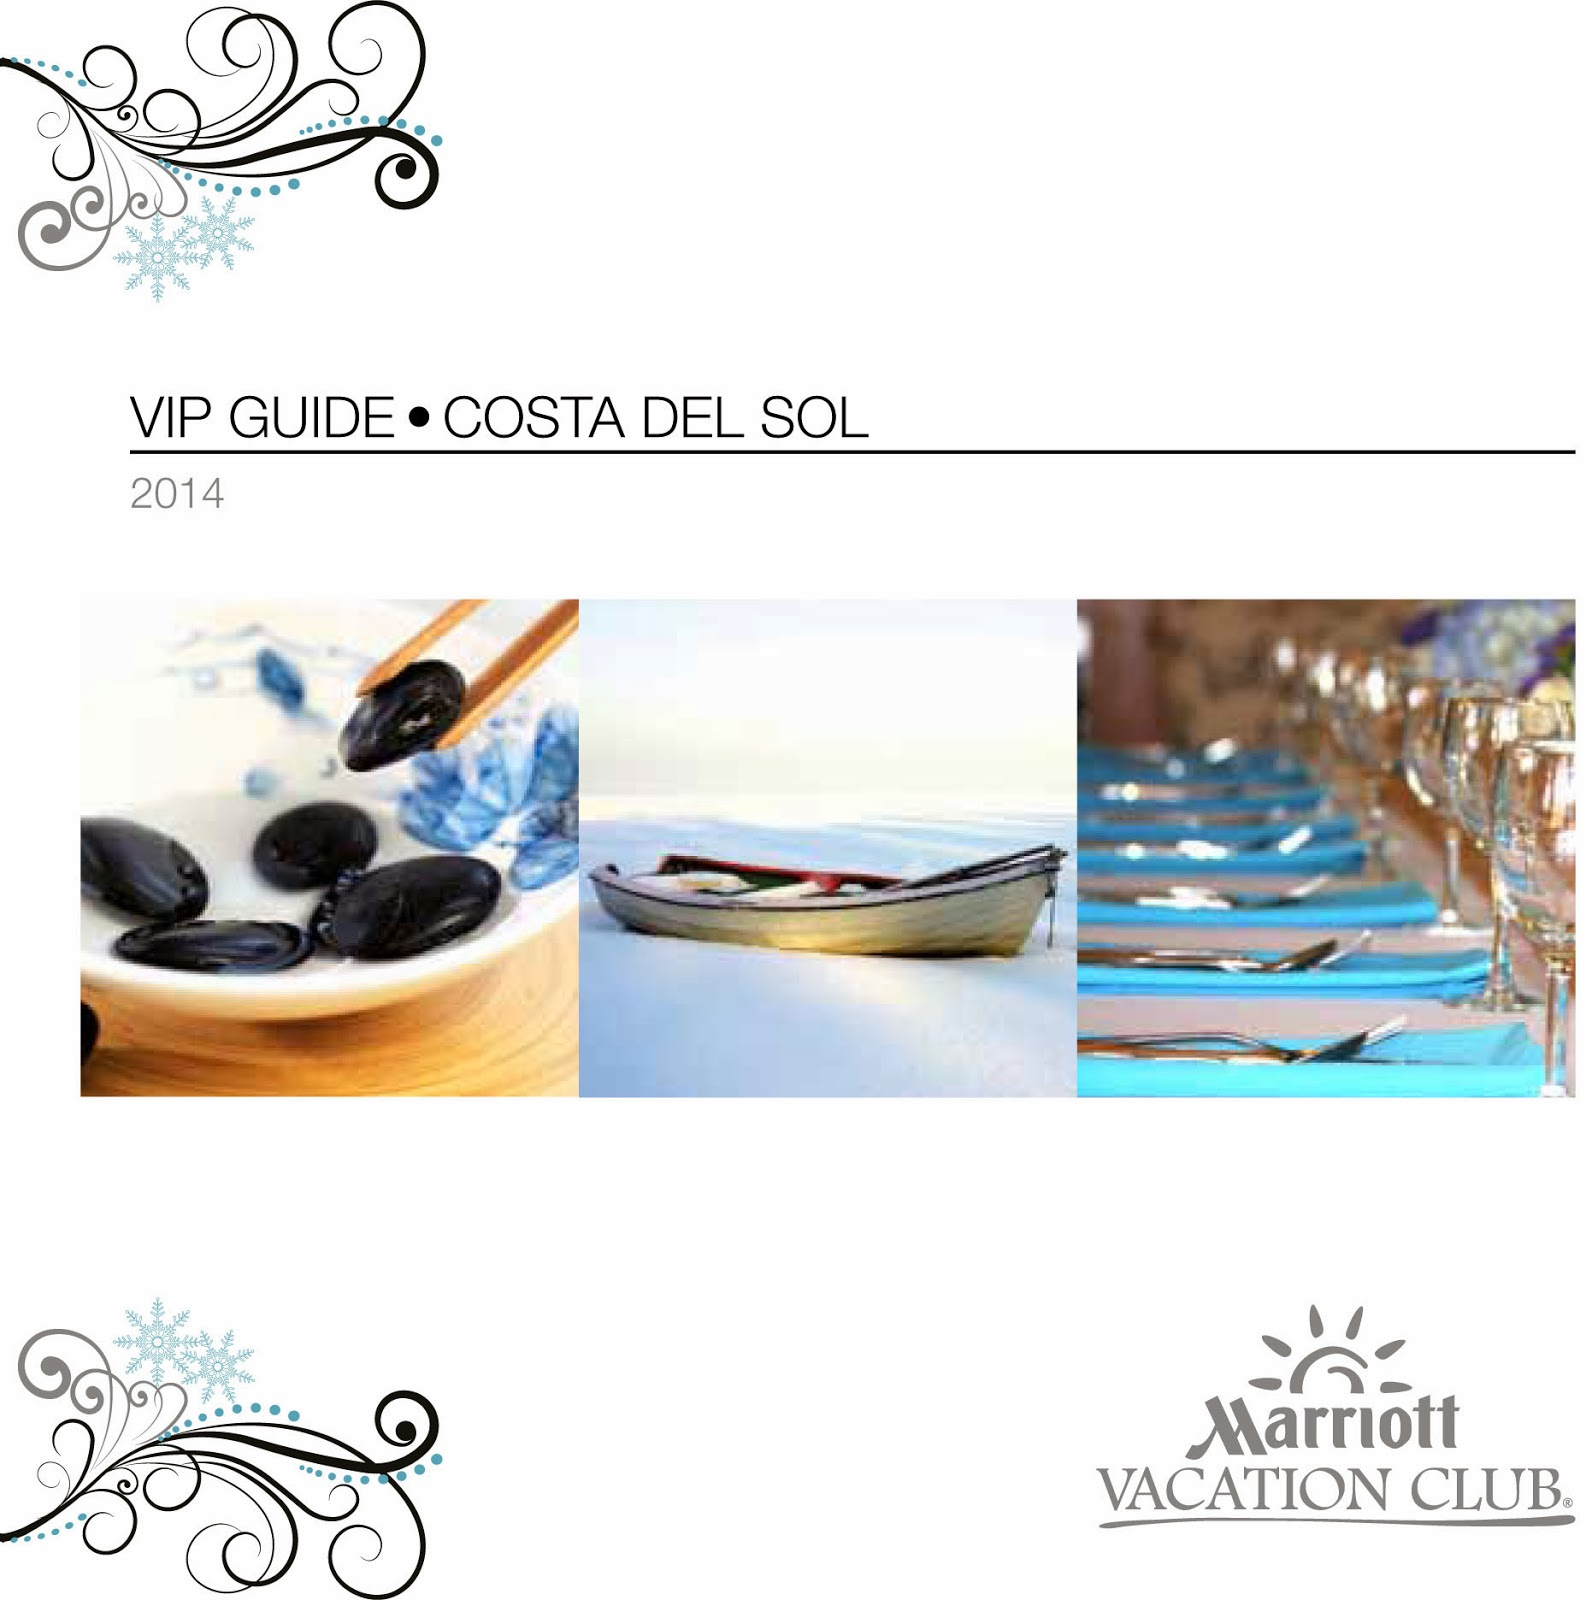 http://issuu.com/sunsearchmedia/docs/marriott_s_vip_guide_9_issuu